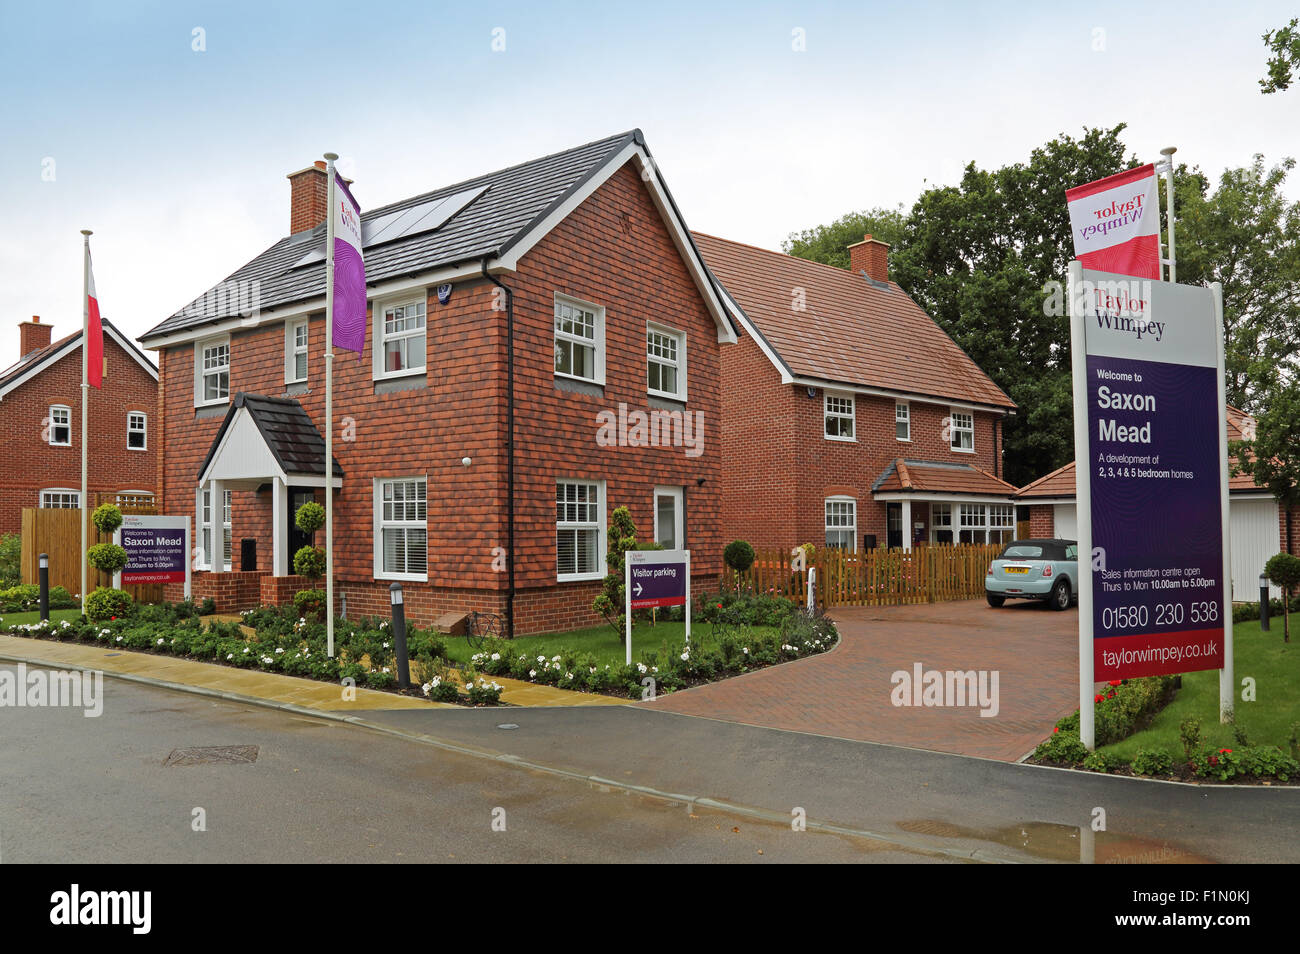 Show homes on a new Taylor Wimpey residential development in Kent, UK - Stock Image